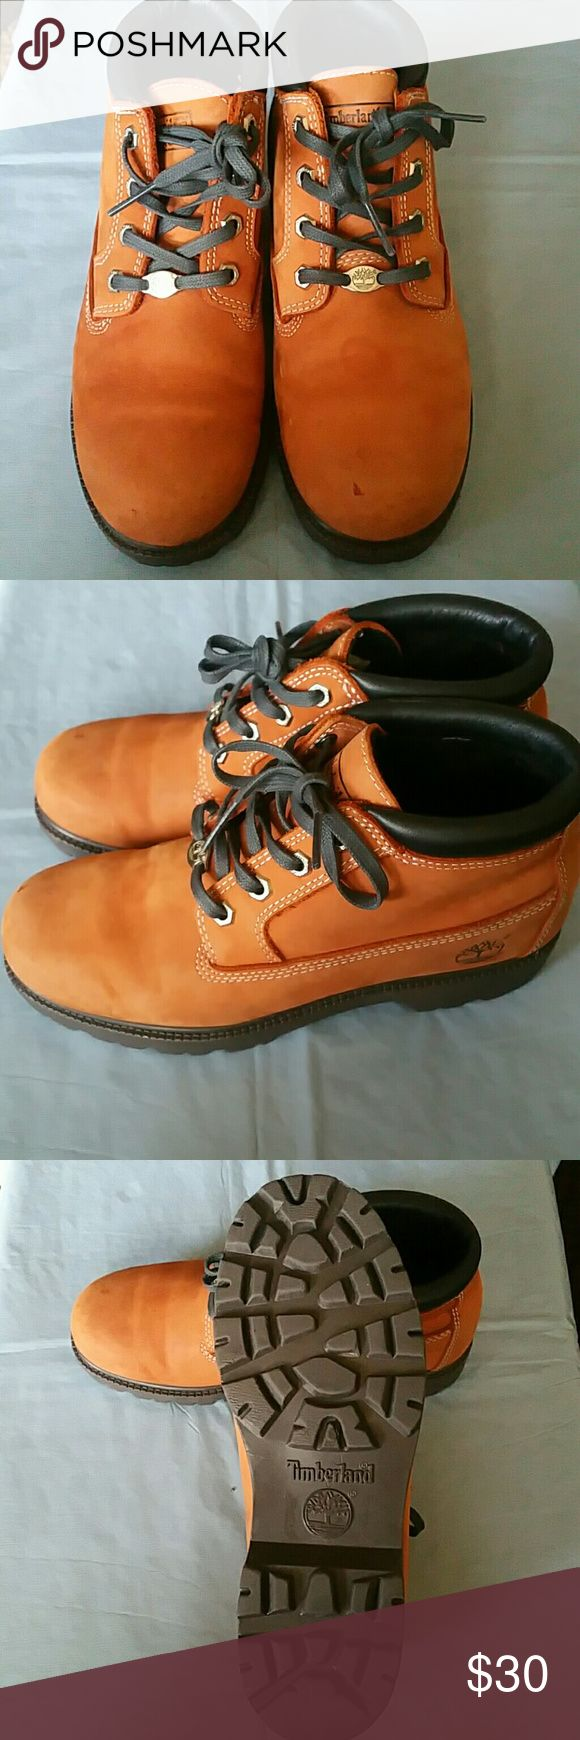 WOMENS TIMBERLANDS Size 8 womens timberland boots orangish brown few scuffs on top shown in last pic...priced as is due to markings Timberland Shoes Combat & Moto Boots